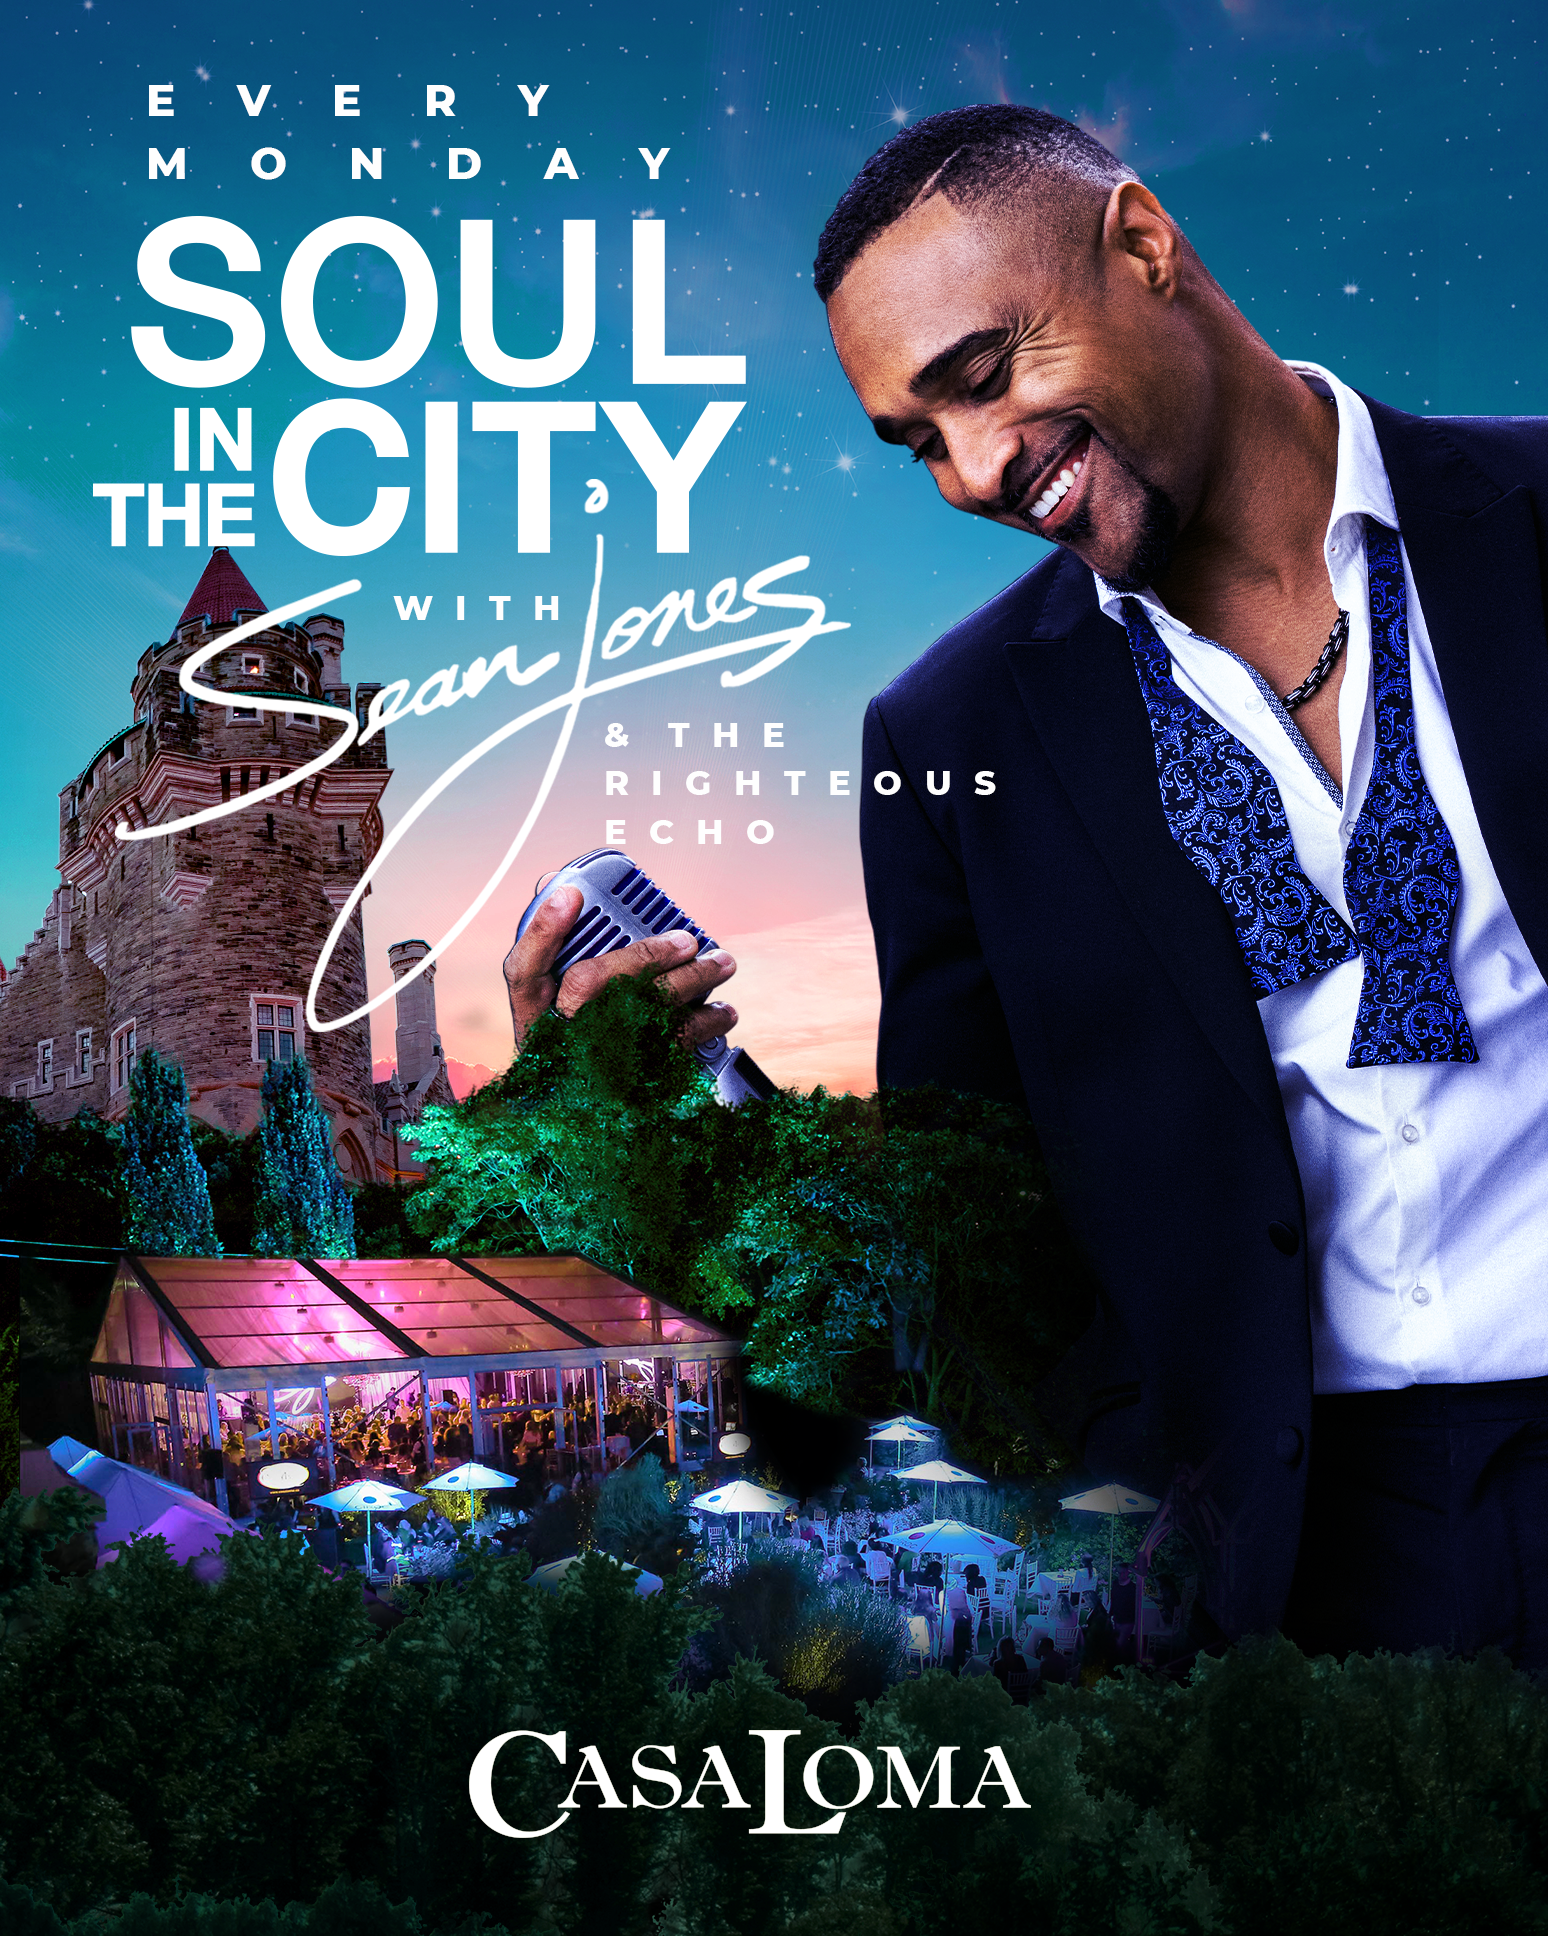 SOUL IN THE CITY